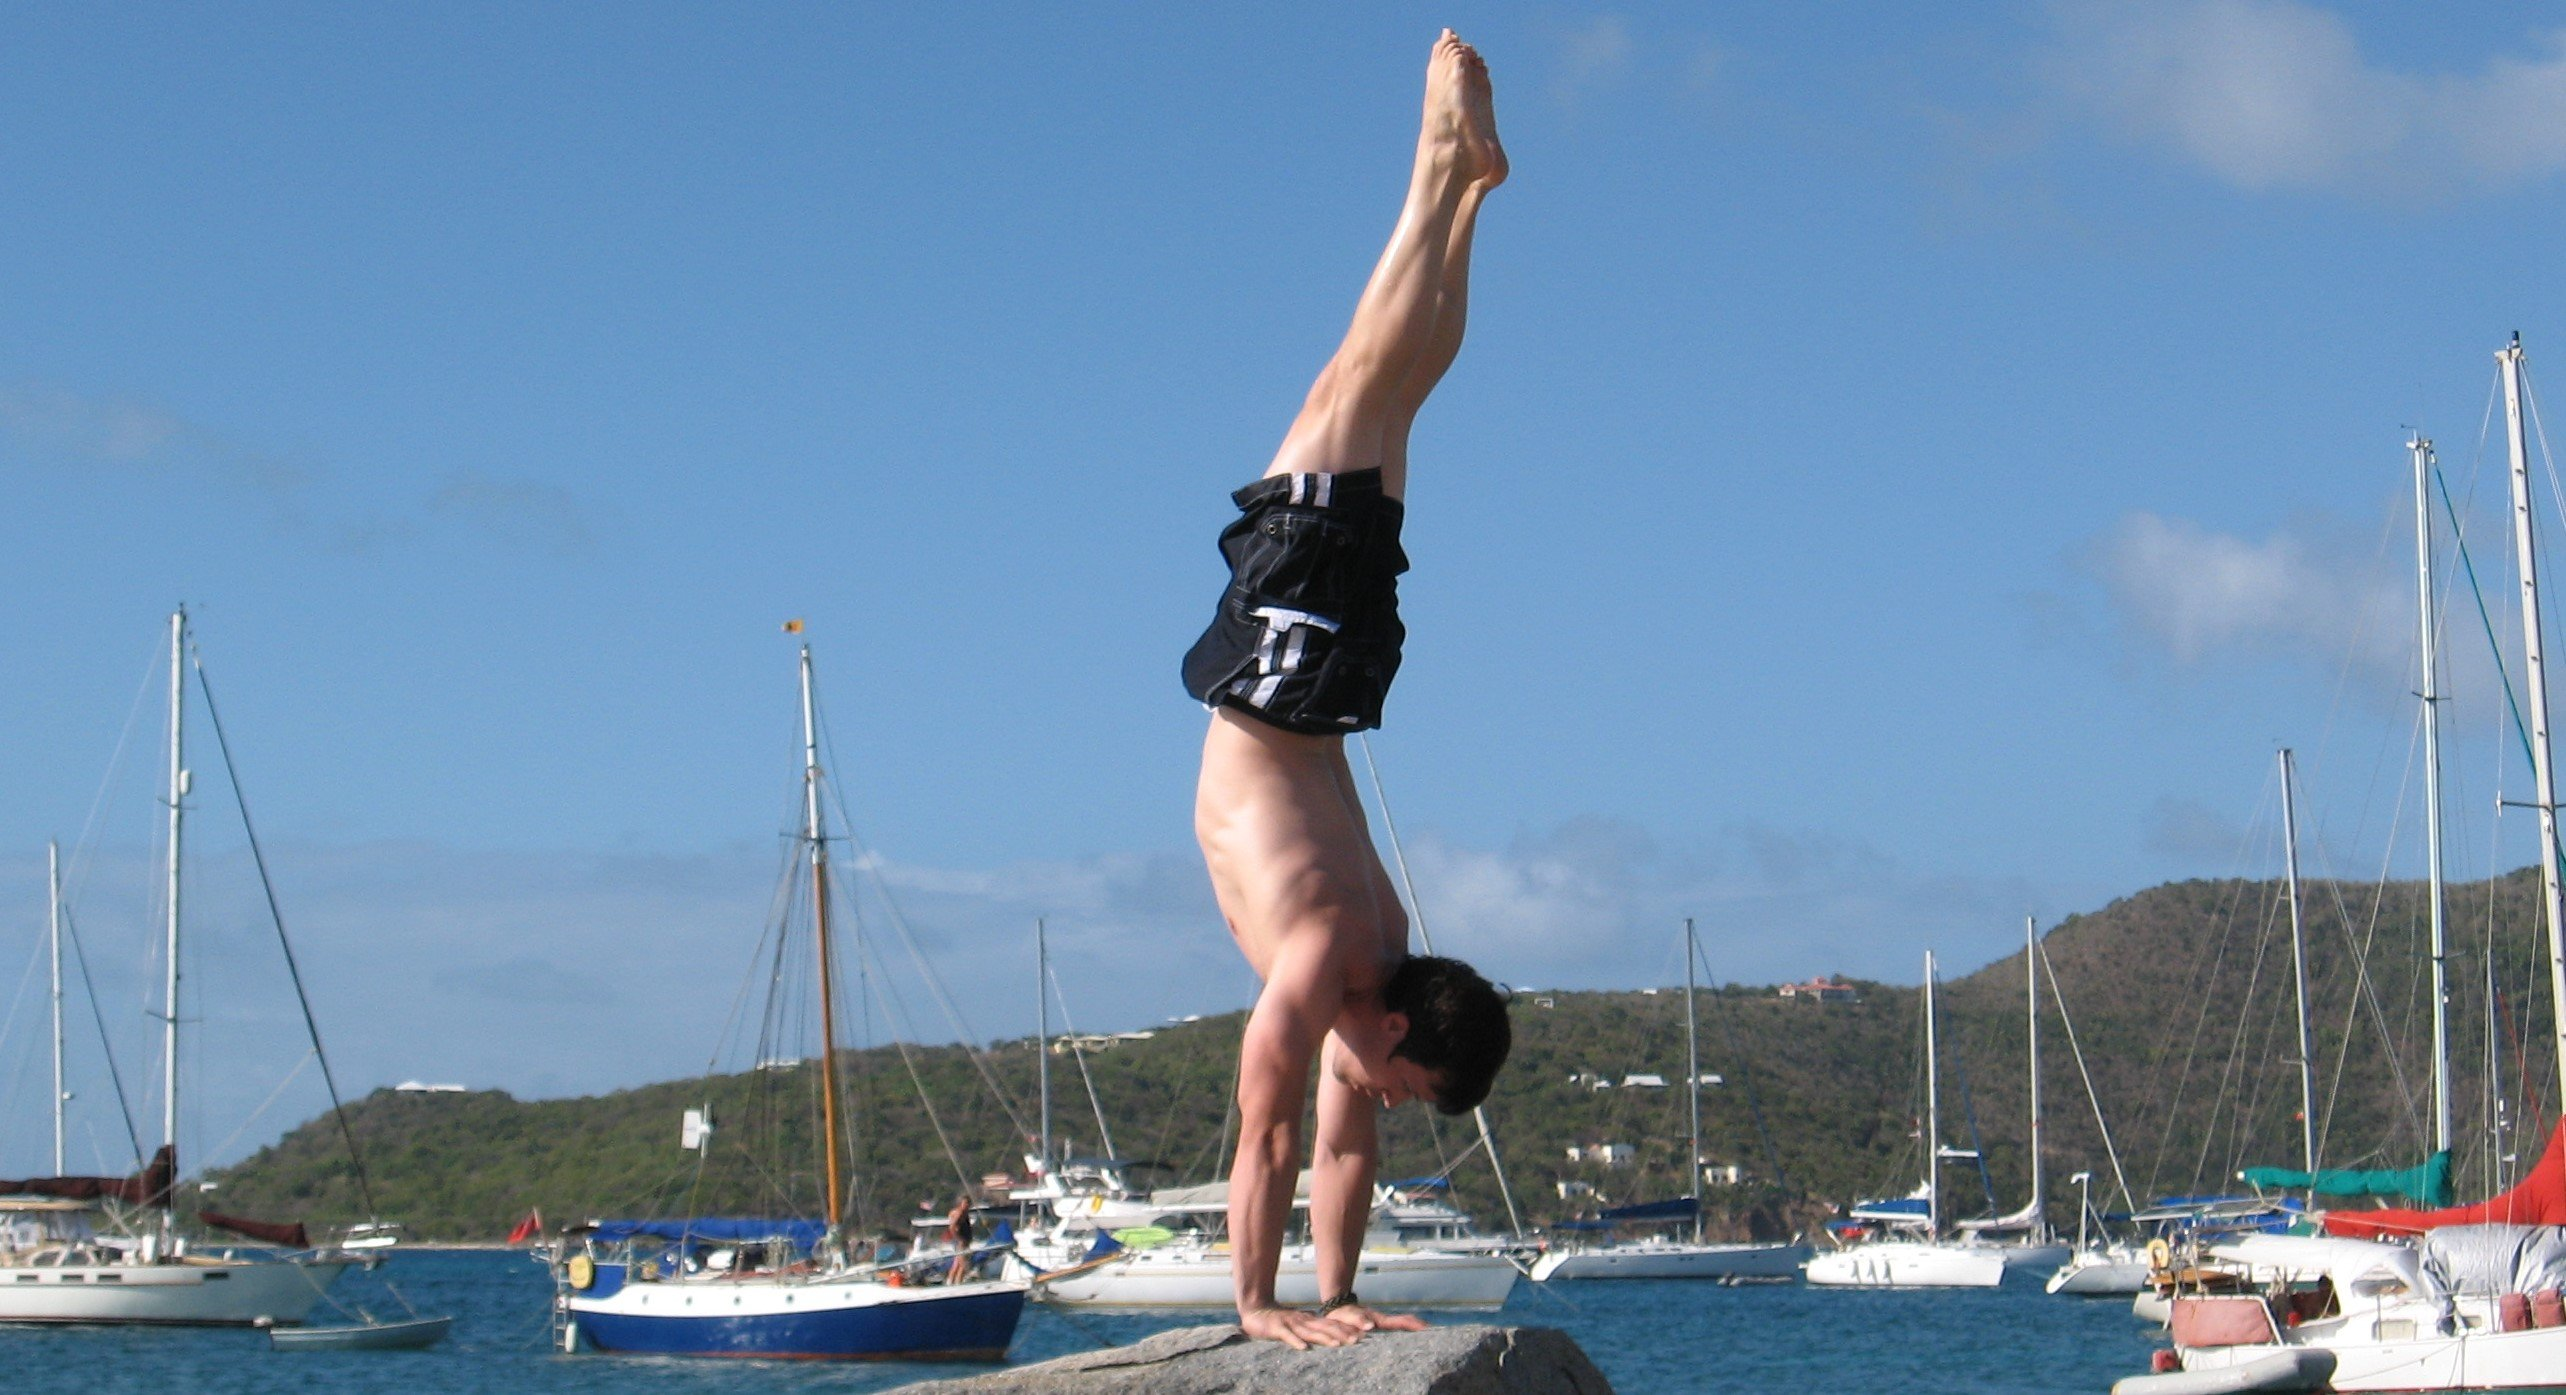 The one and only Jim doing a banana shaped handstand